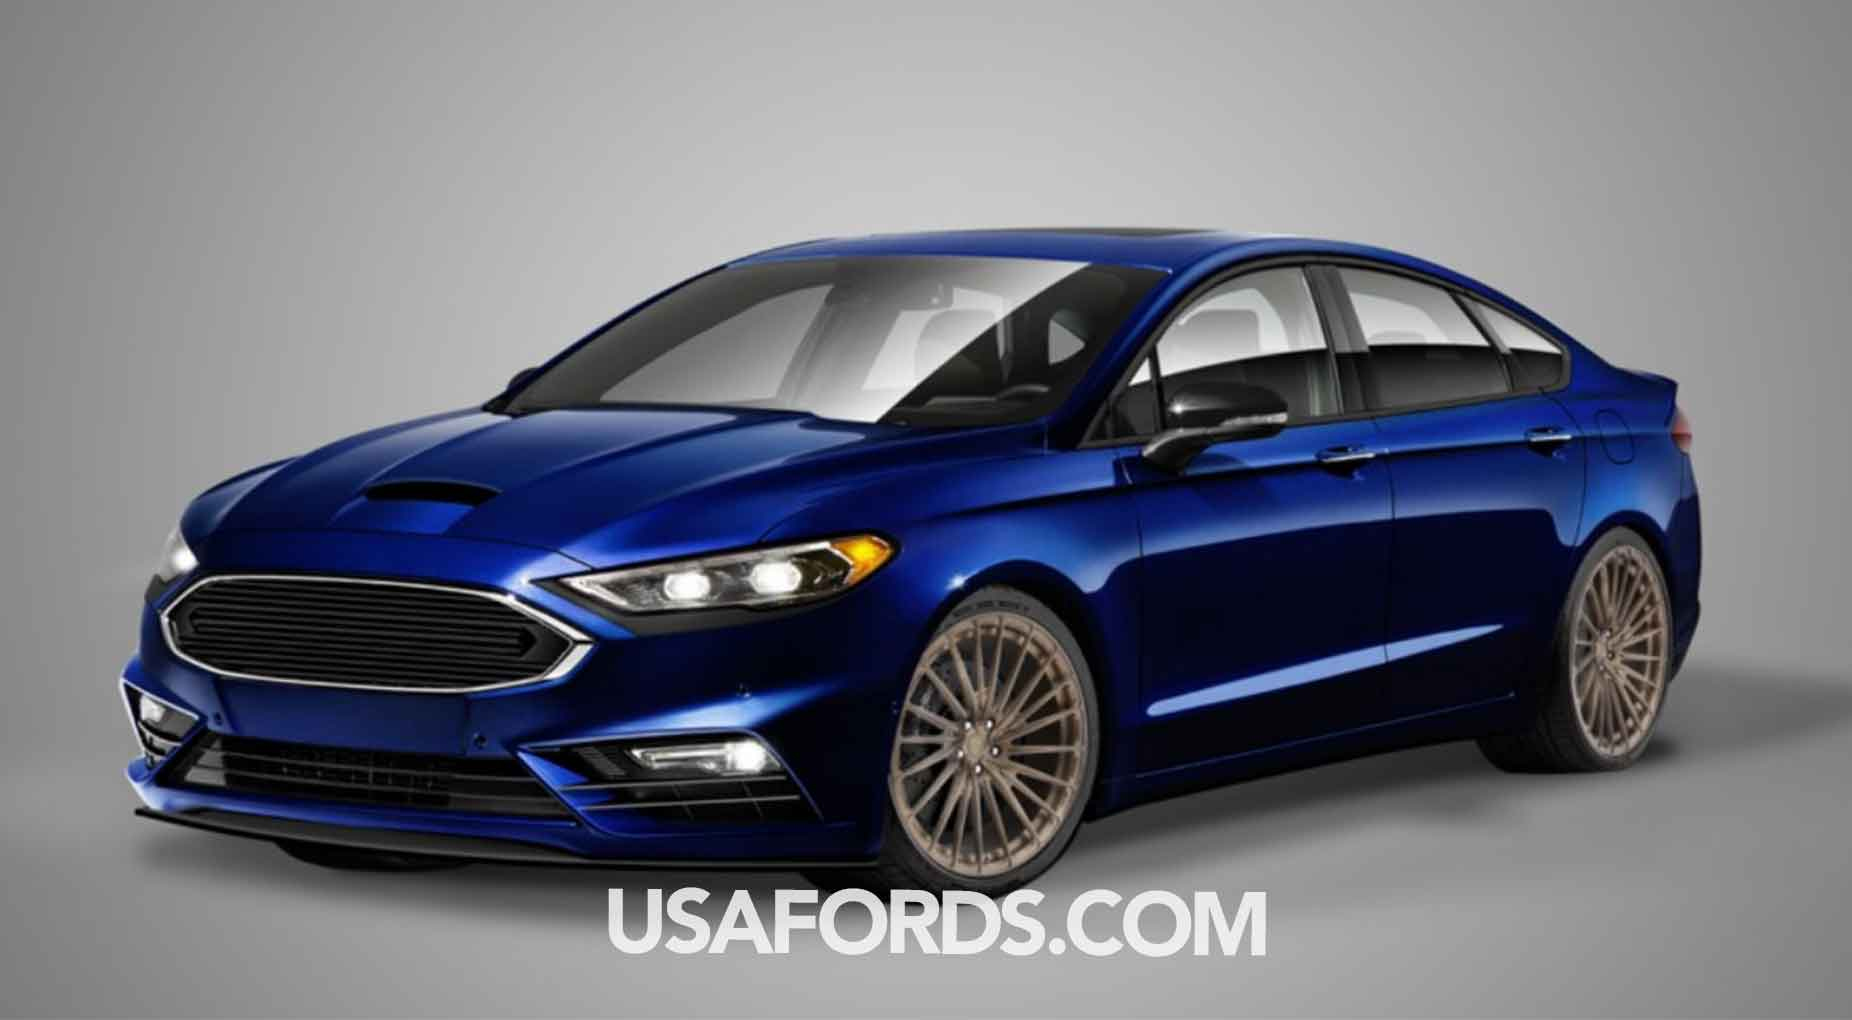 2021 Ford Fusion Redesign | Usa Fords Car